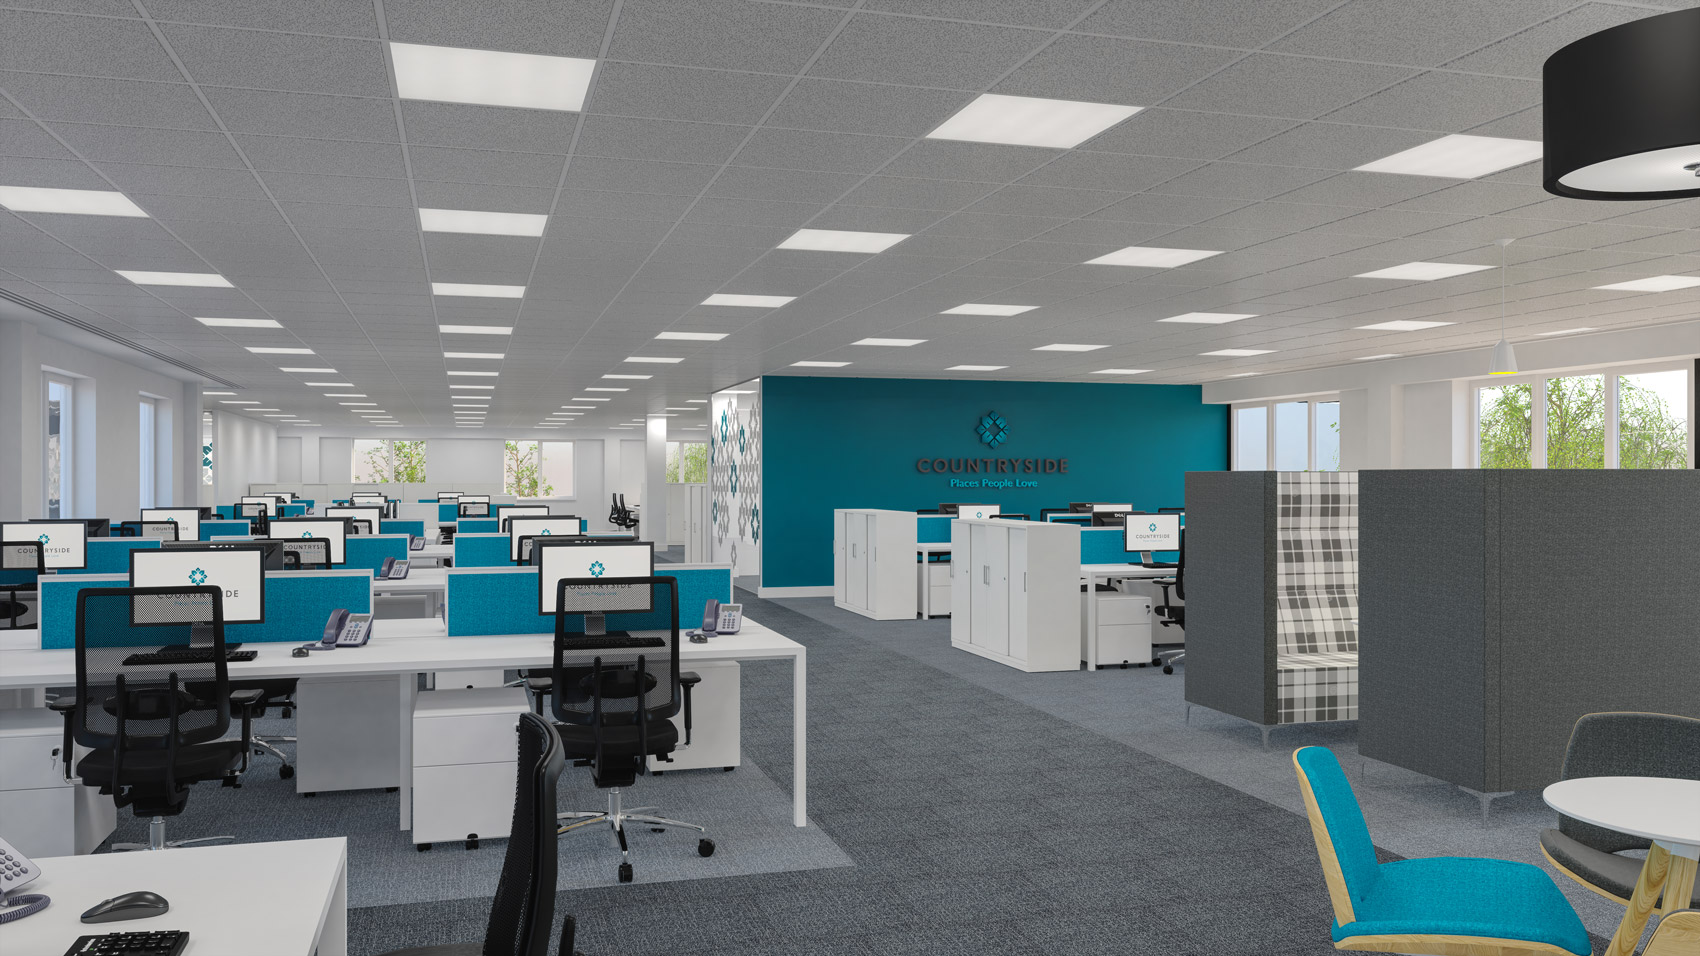 Office design london office design kent uk for Office design kent